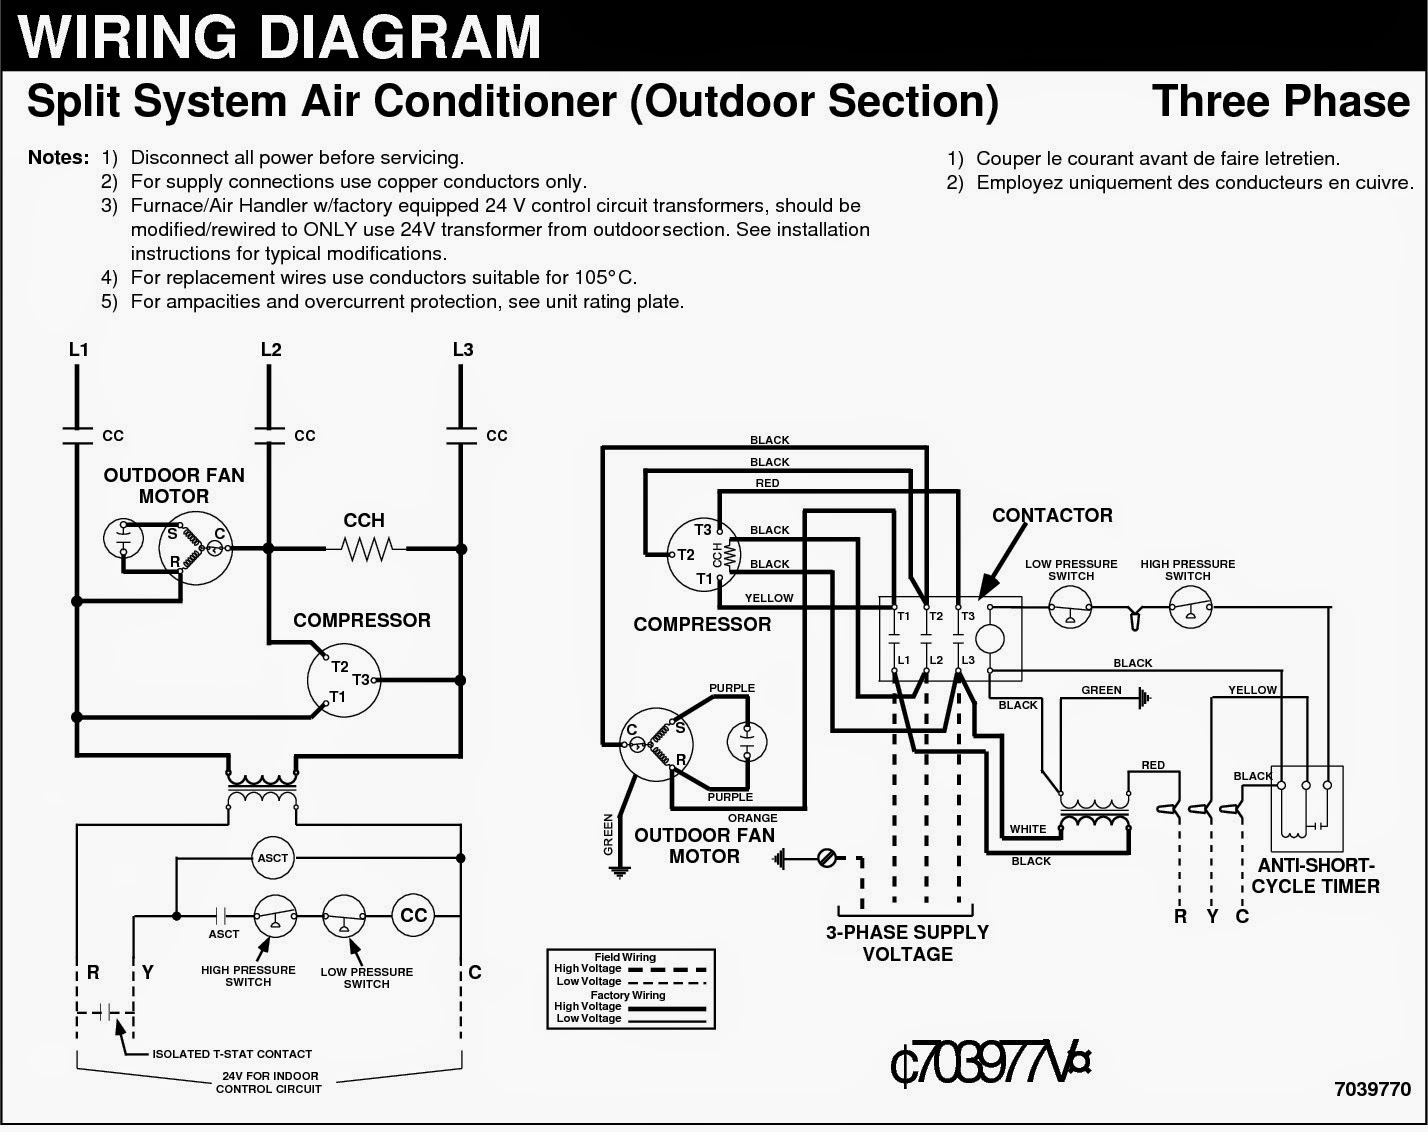 3+phase electrical wiring diagrams for air conditioning systems part two car ac schematic diagram at reclaimingppi.co